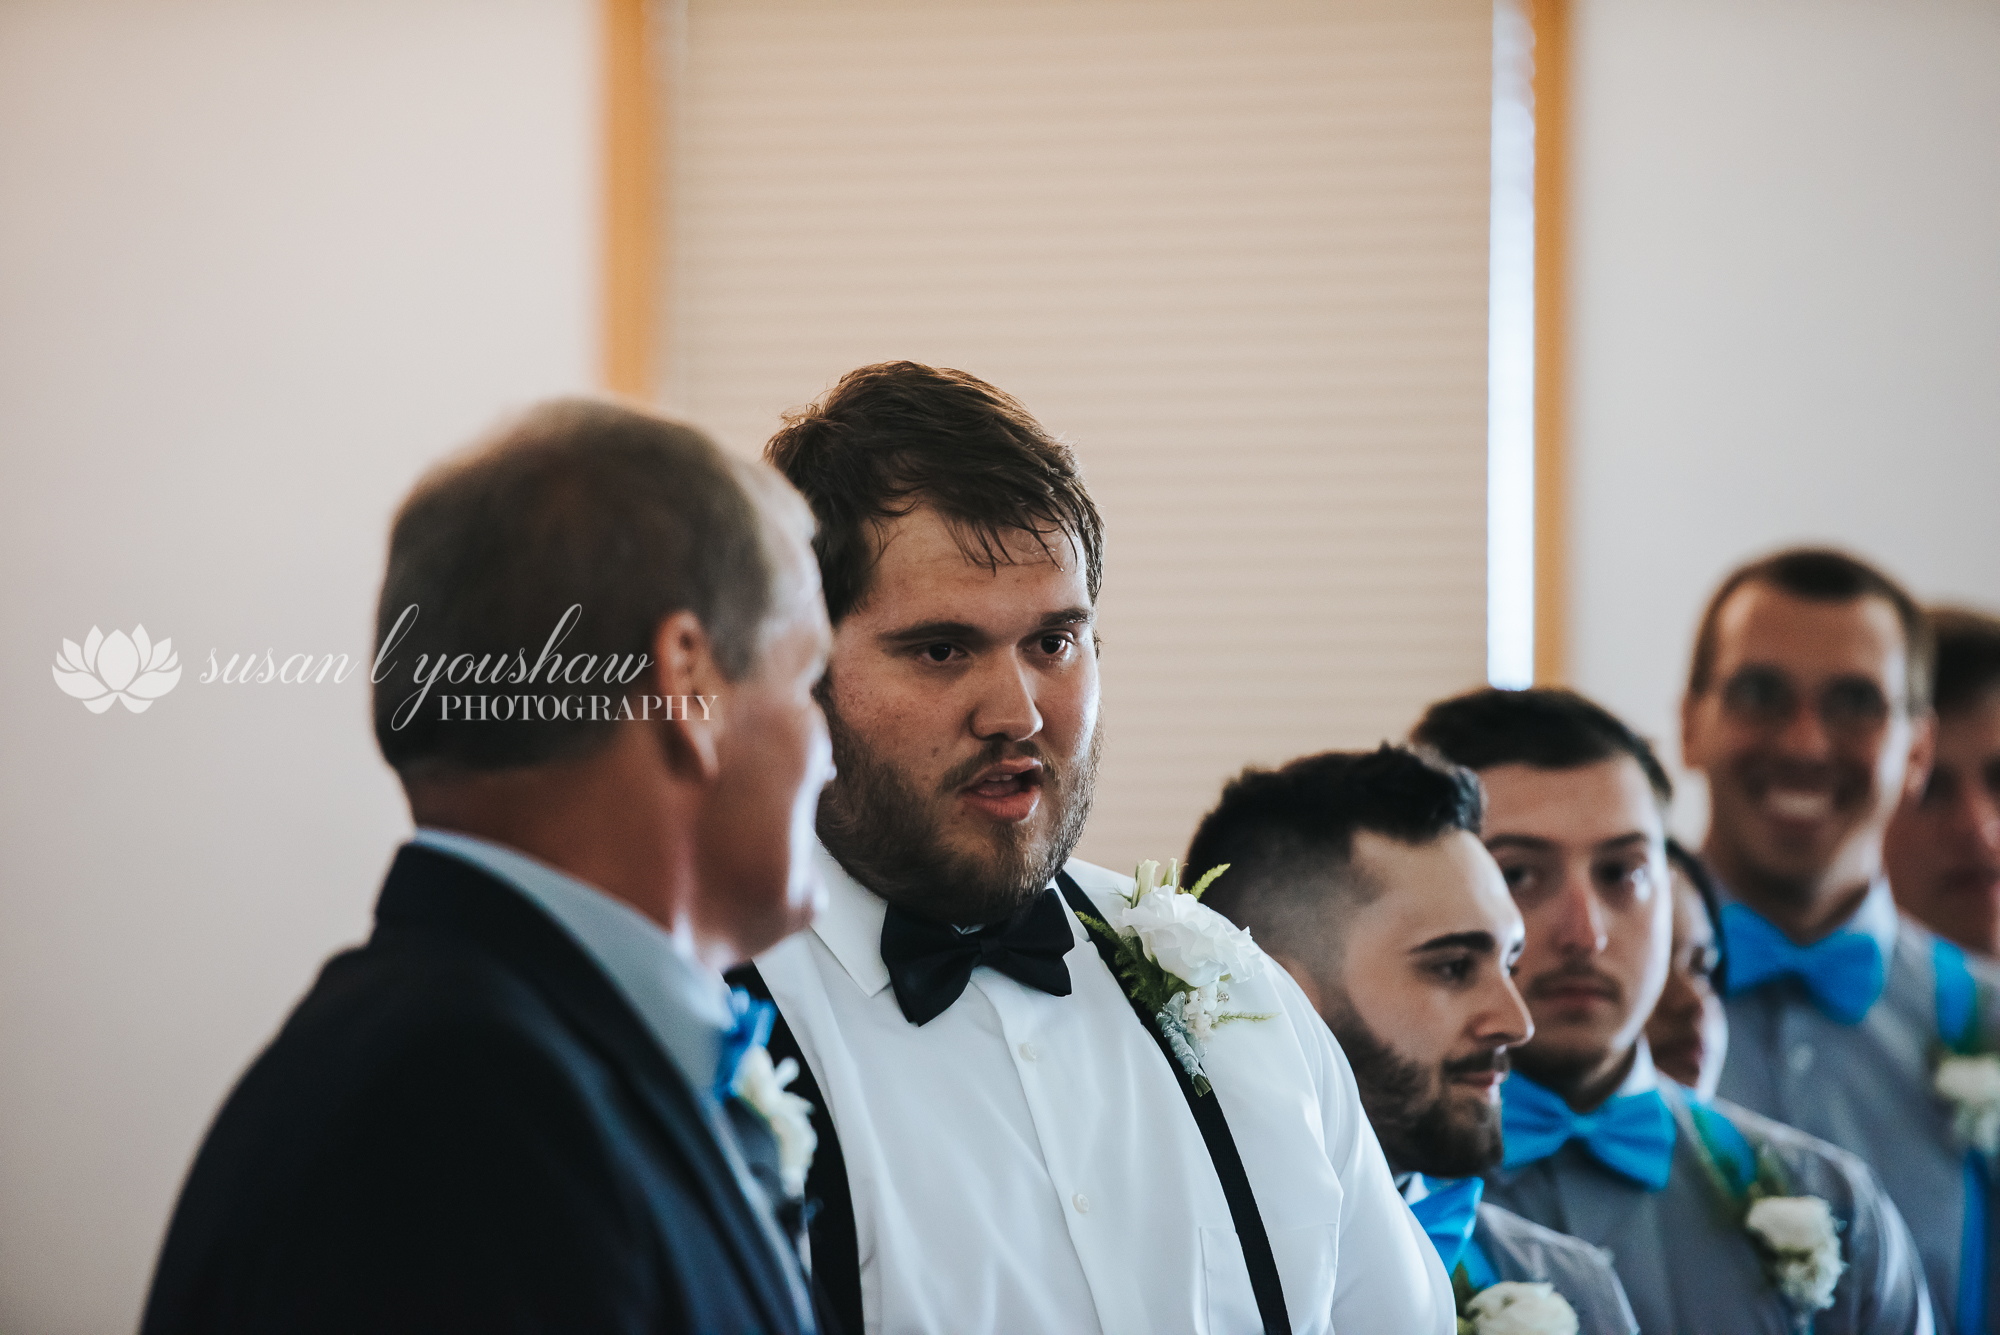 Katelyn and Wes Wedding Photos 07-13-2019 SLY Photography-45.jpg